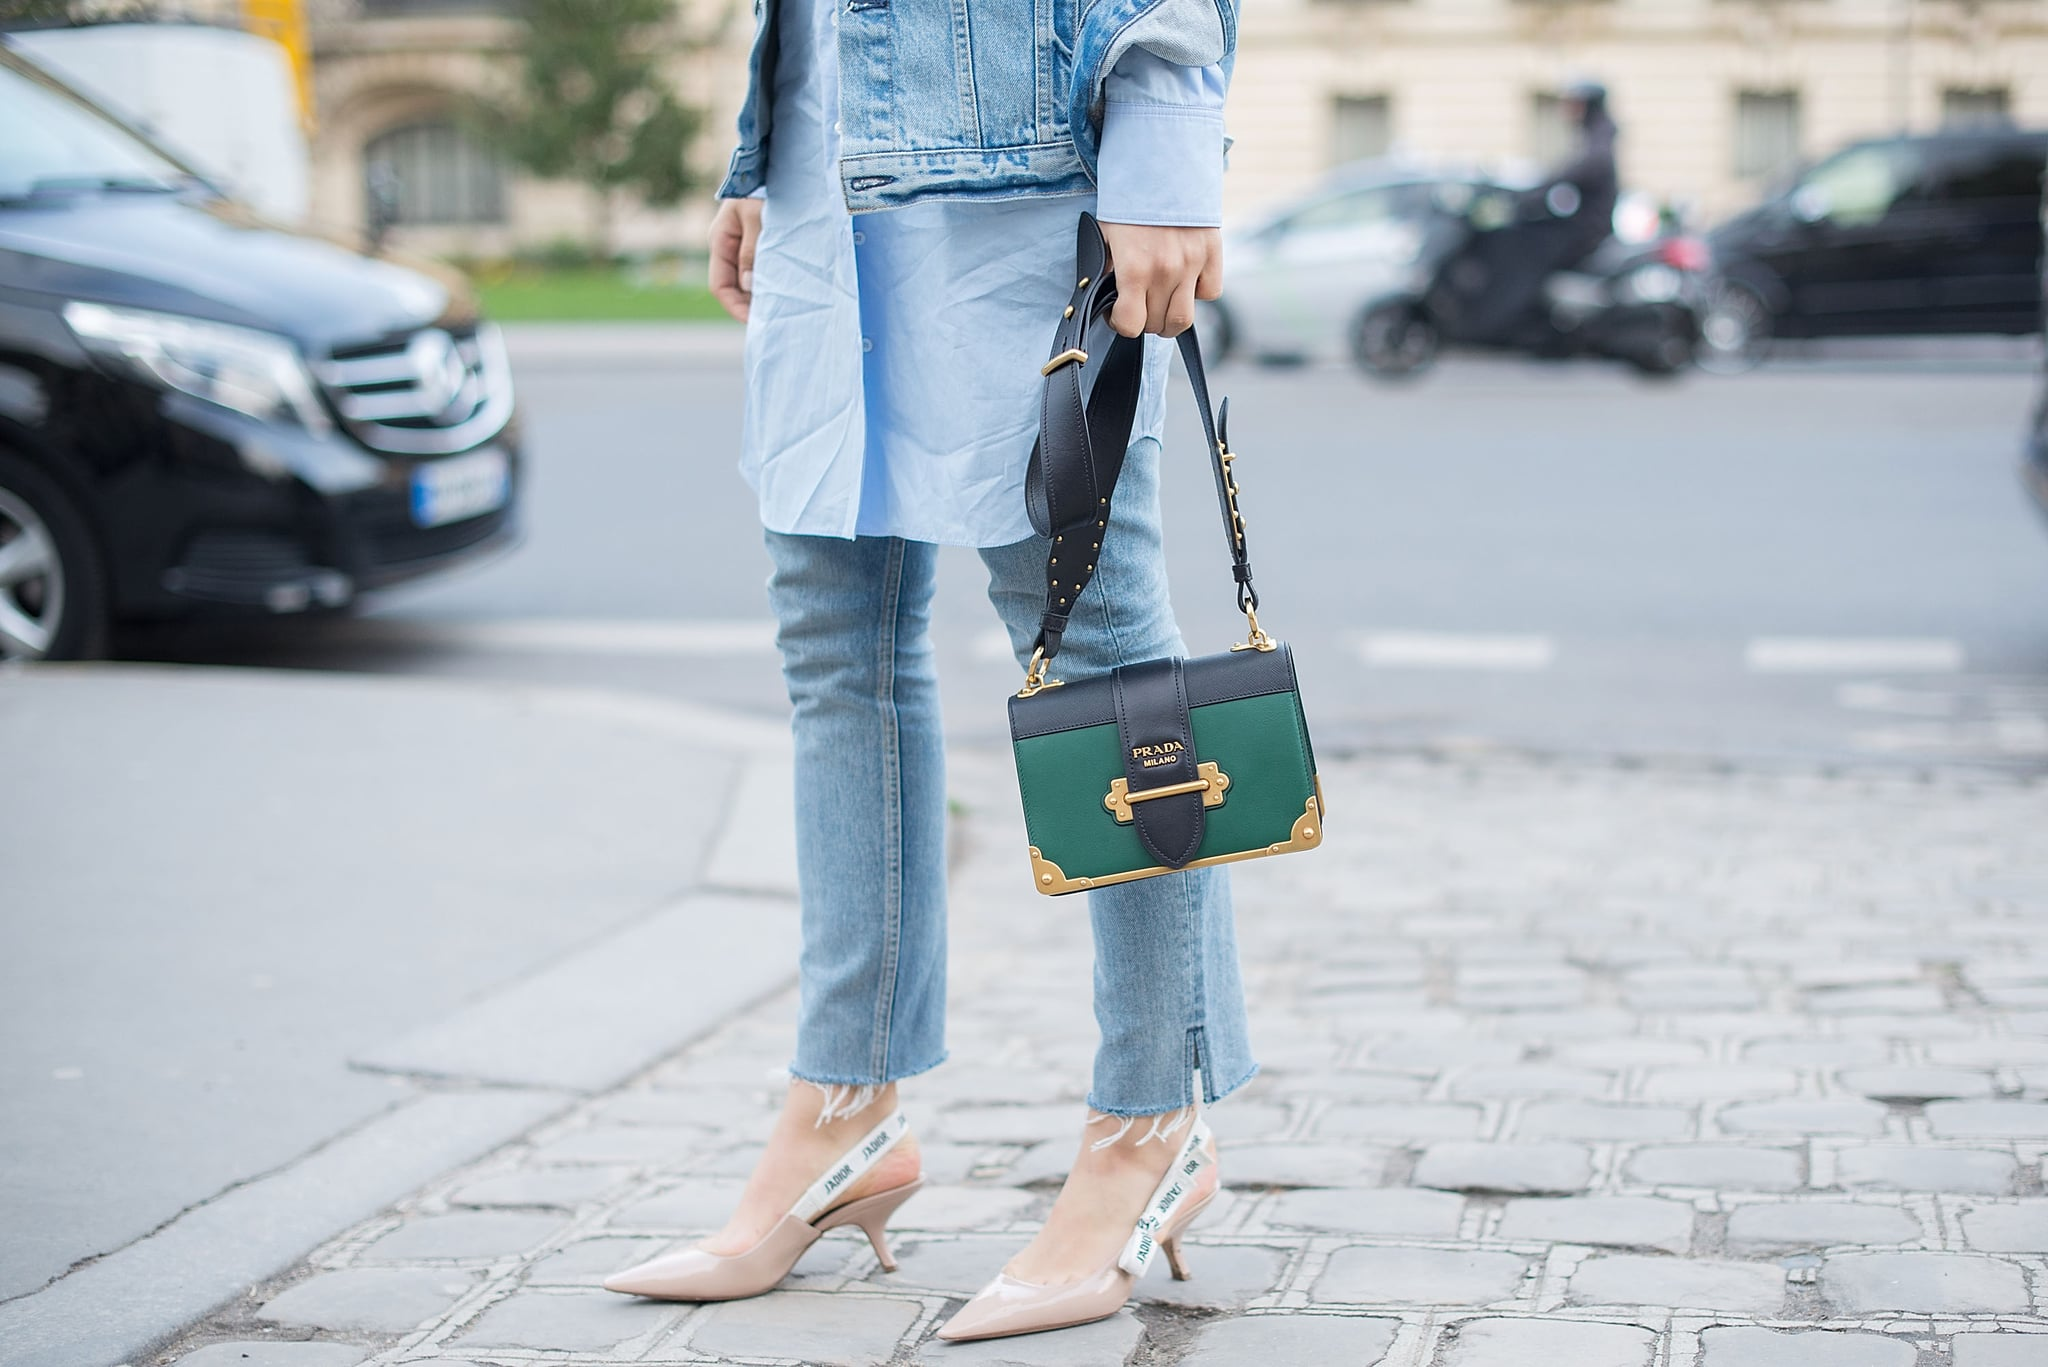 Are Kitten Heels in Style? | POPSUGAR Fashion